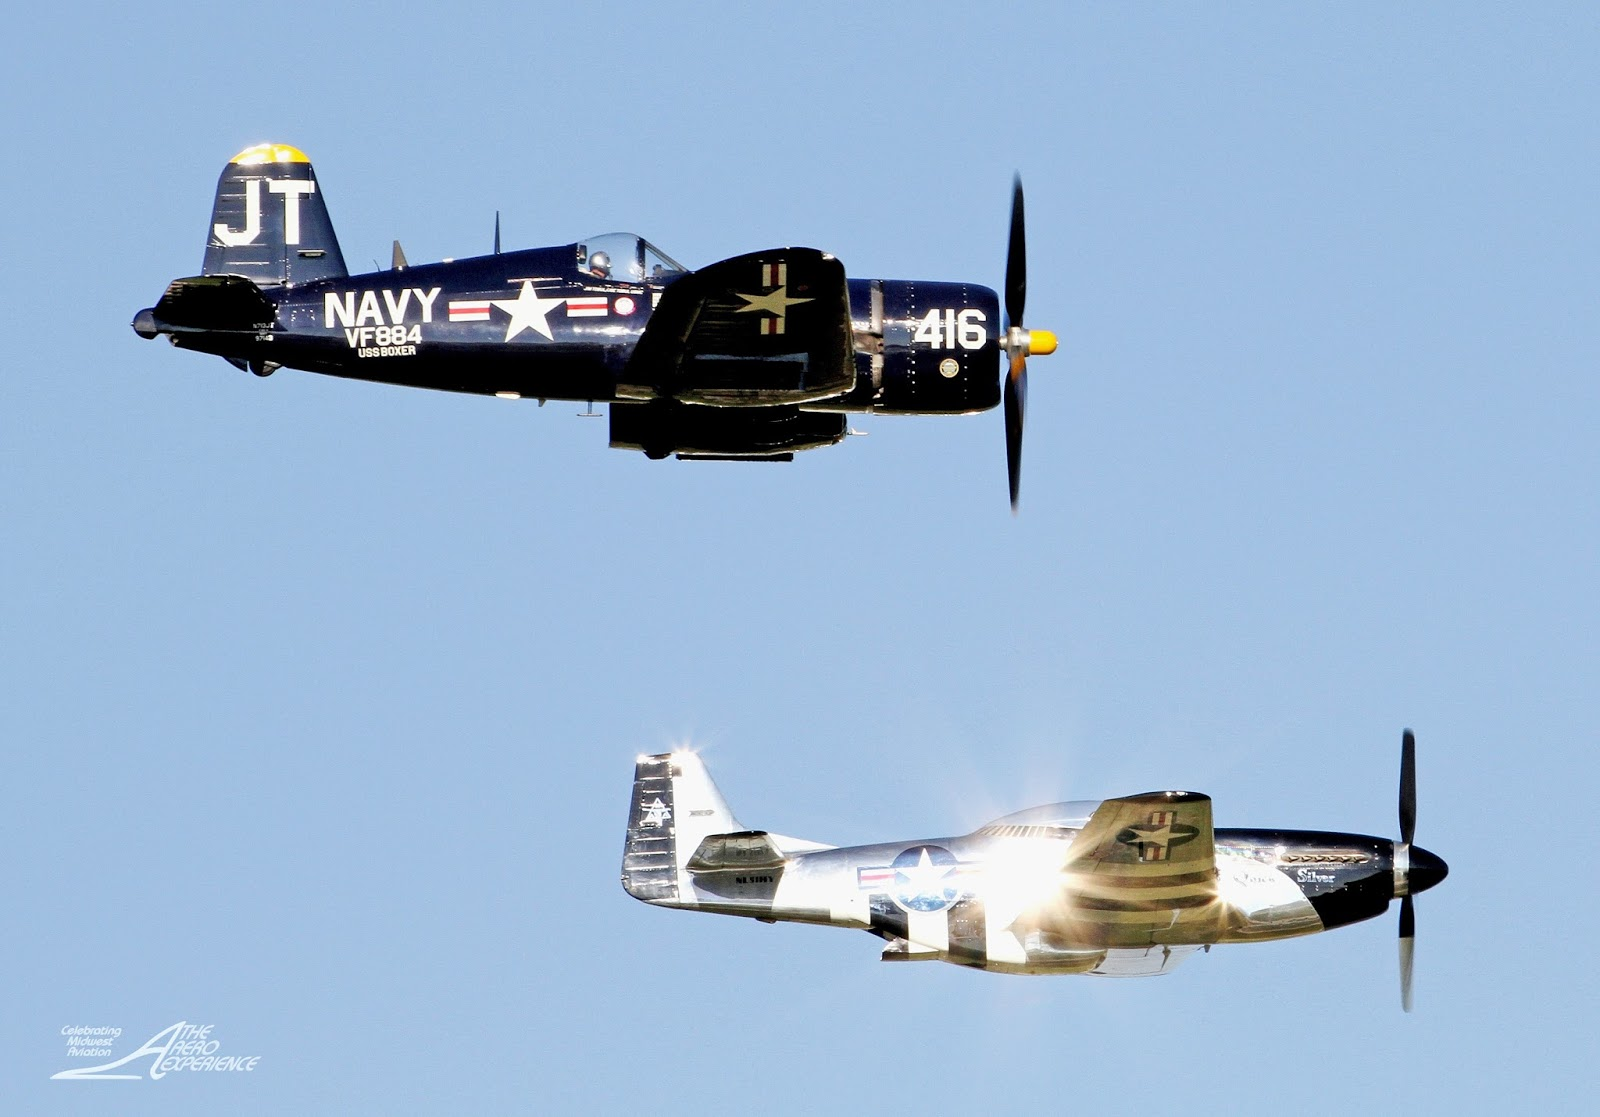 World War II: The North American P-51 Mustang